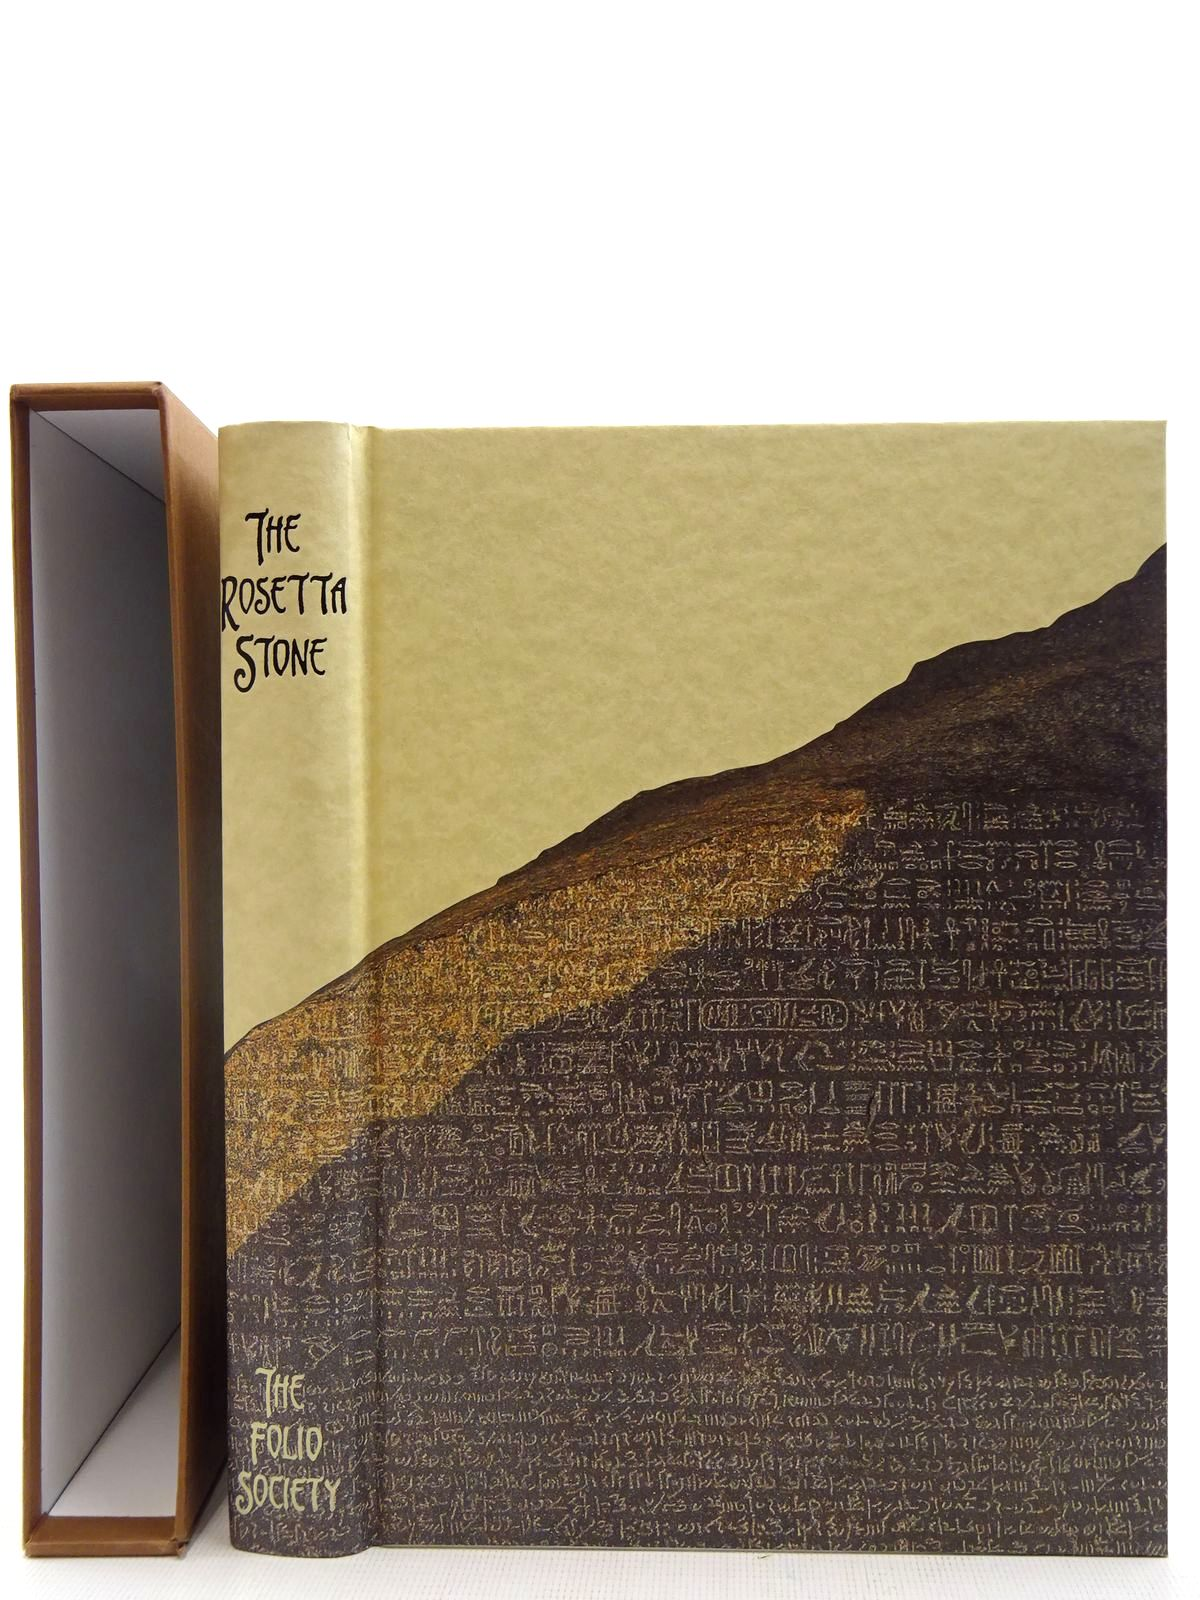 Photo of THE ROSETTA STONE written by Sole, Robert Valbelle, Dominique Davies, W.V published by Folio Society (STOCK CODE: 2128297)  for sale by Stella & Rose's Books